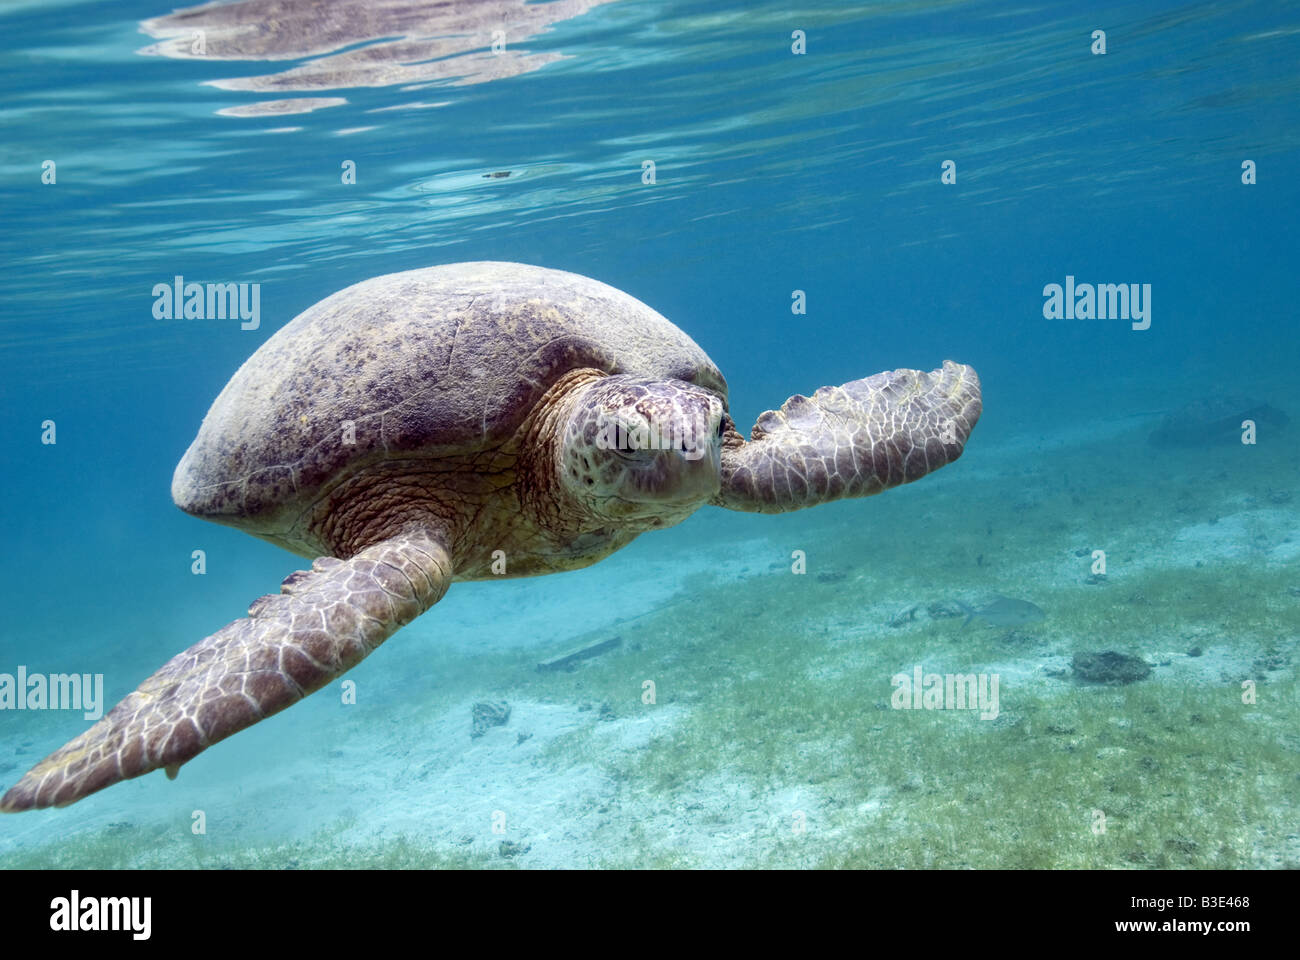 Green Turtle swimming over the seagrass bottom under water - Stock Image